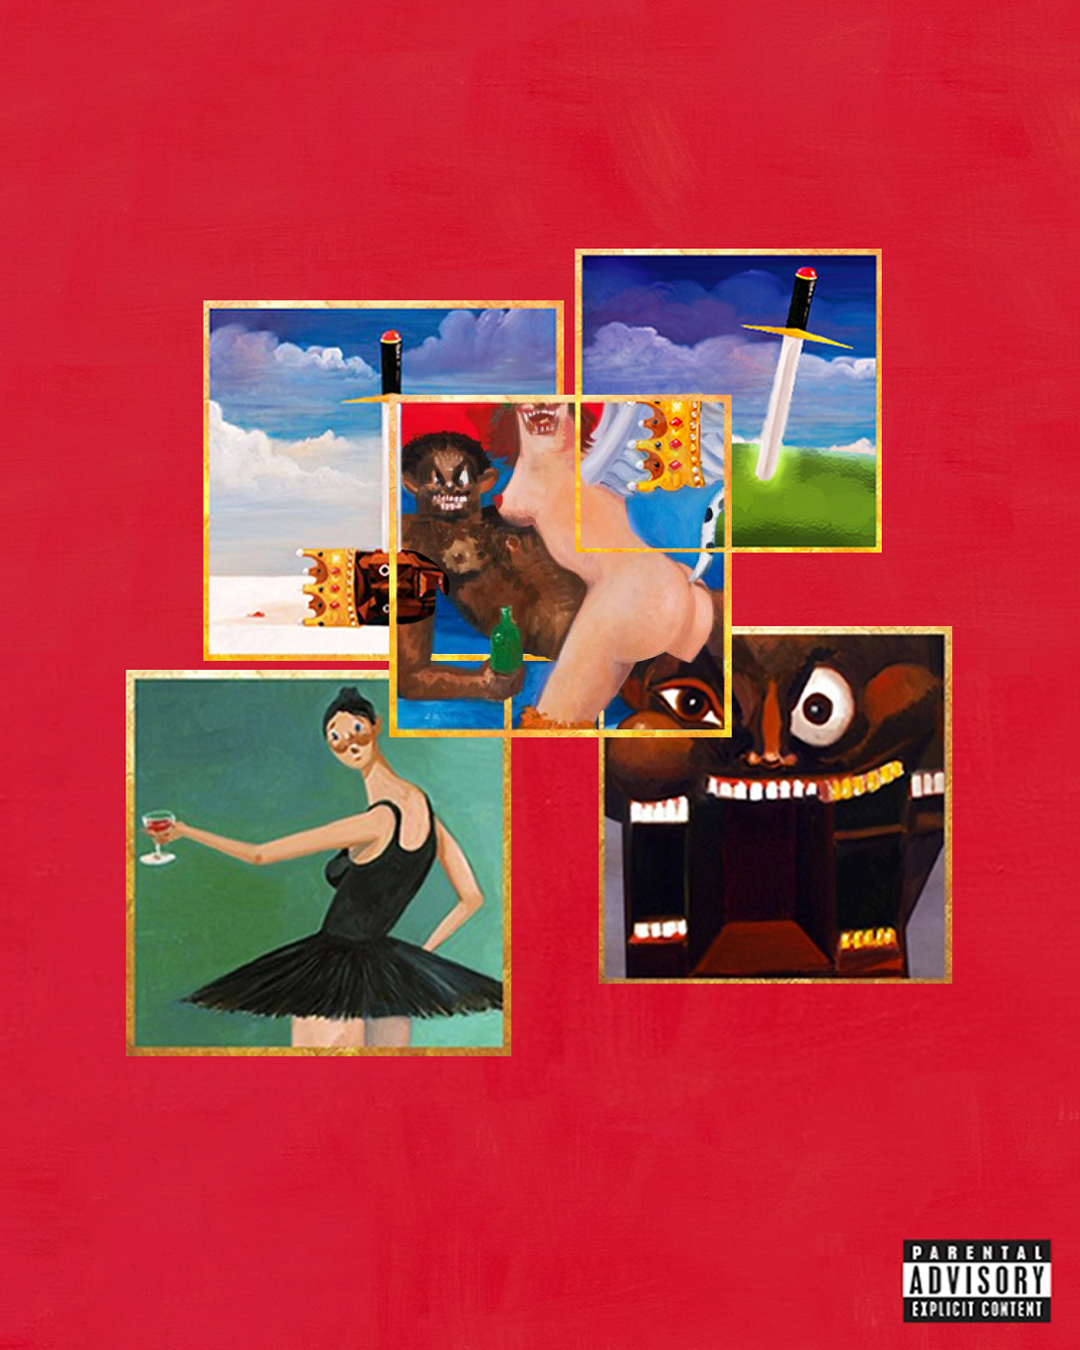 Kanye West My Beautiful Dark Twisted Fantasy Covers Combined In 2020 Beautiful Dark Twisted Fantasy Dark And Twisted Cover Art